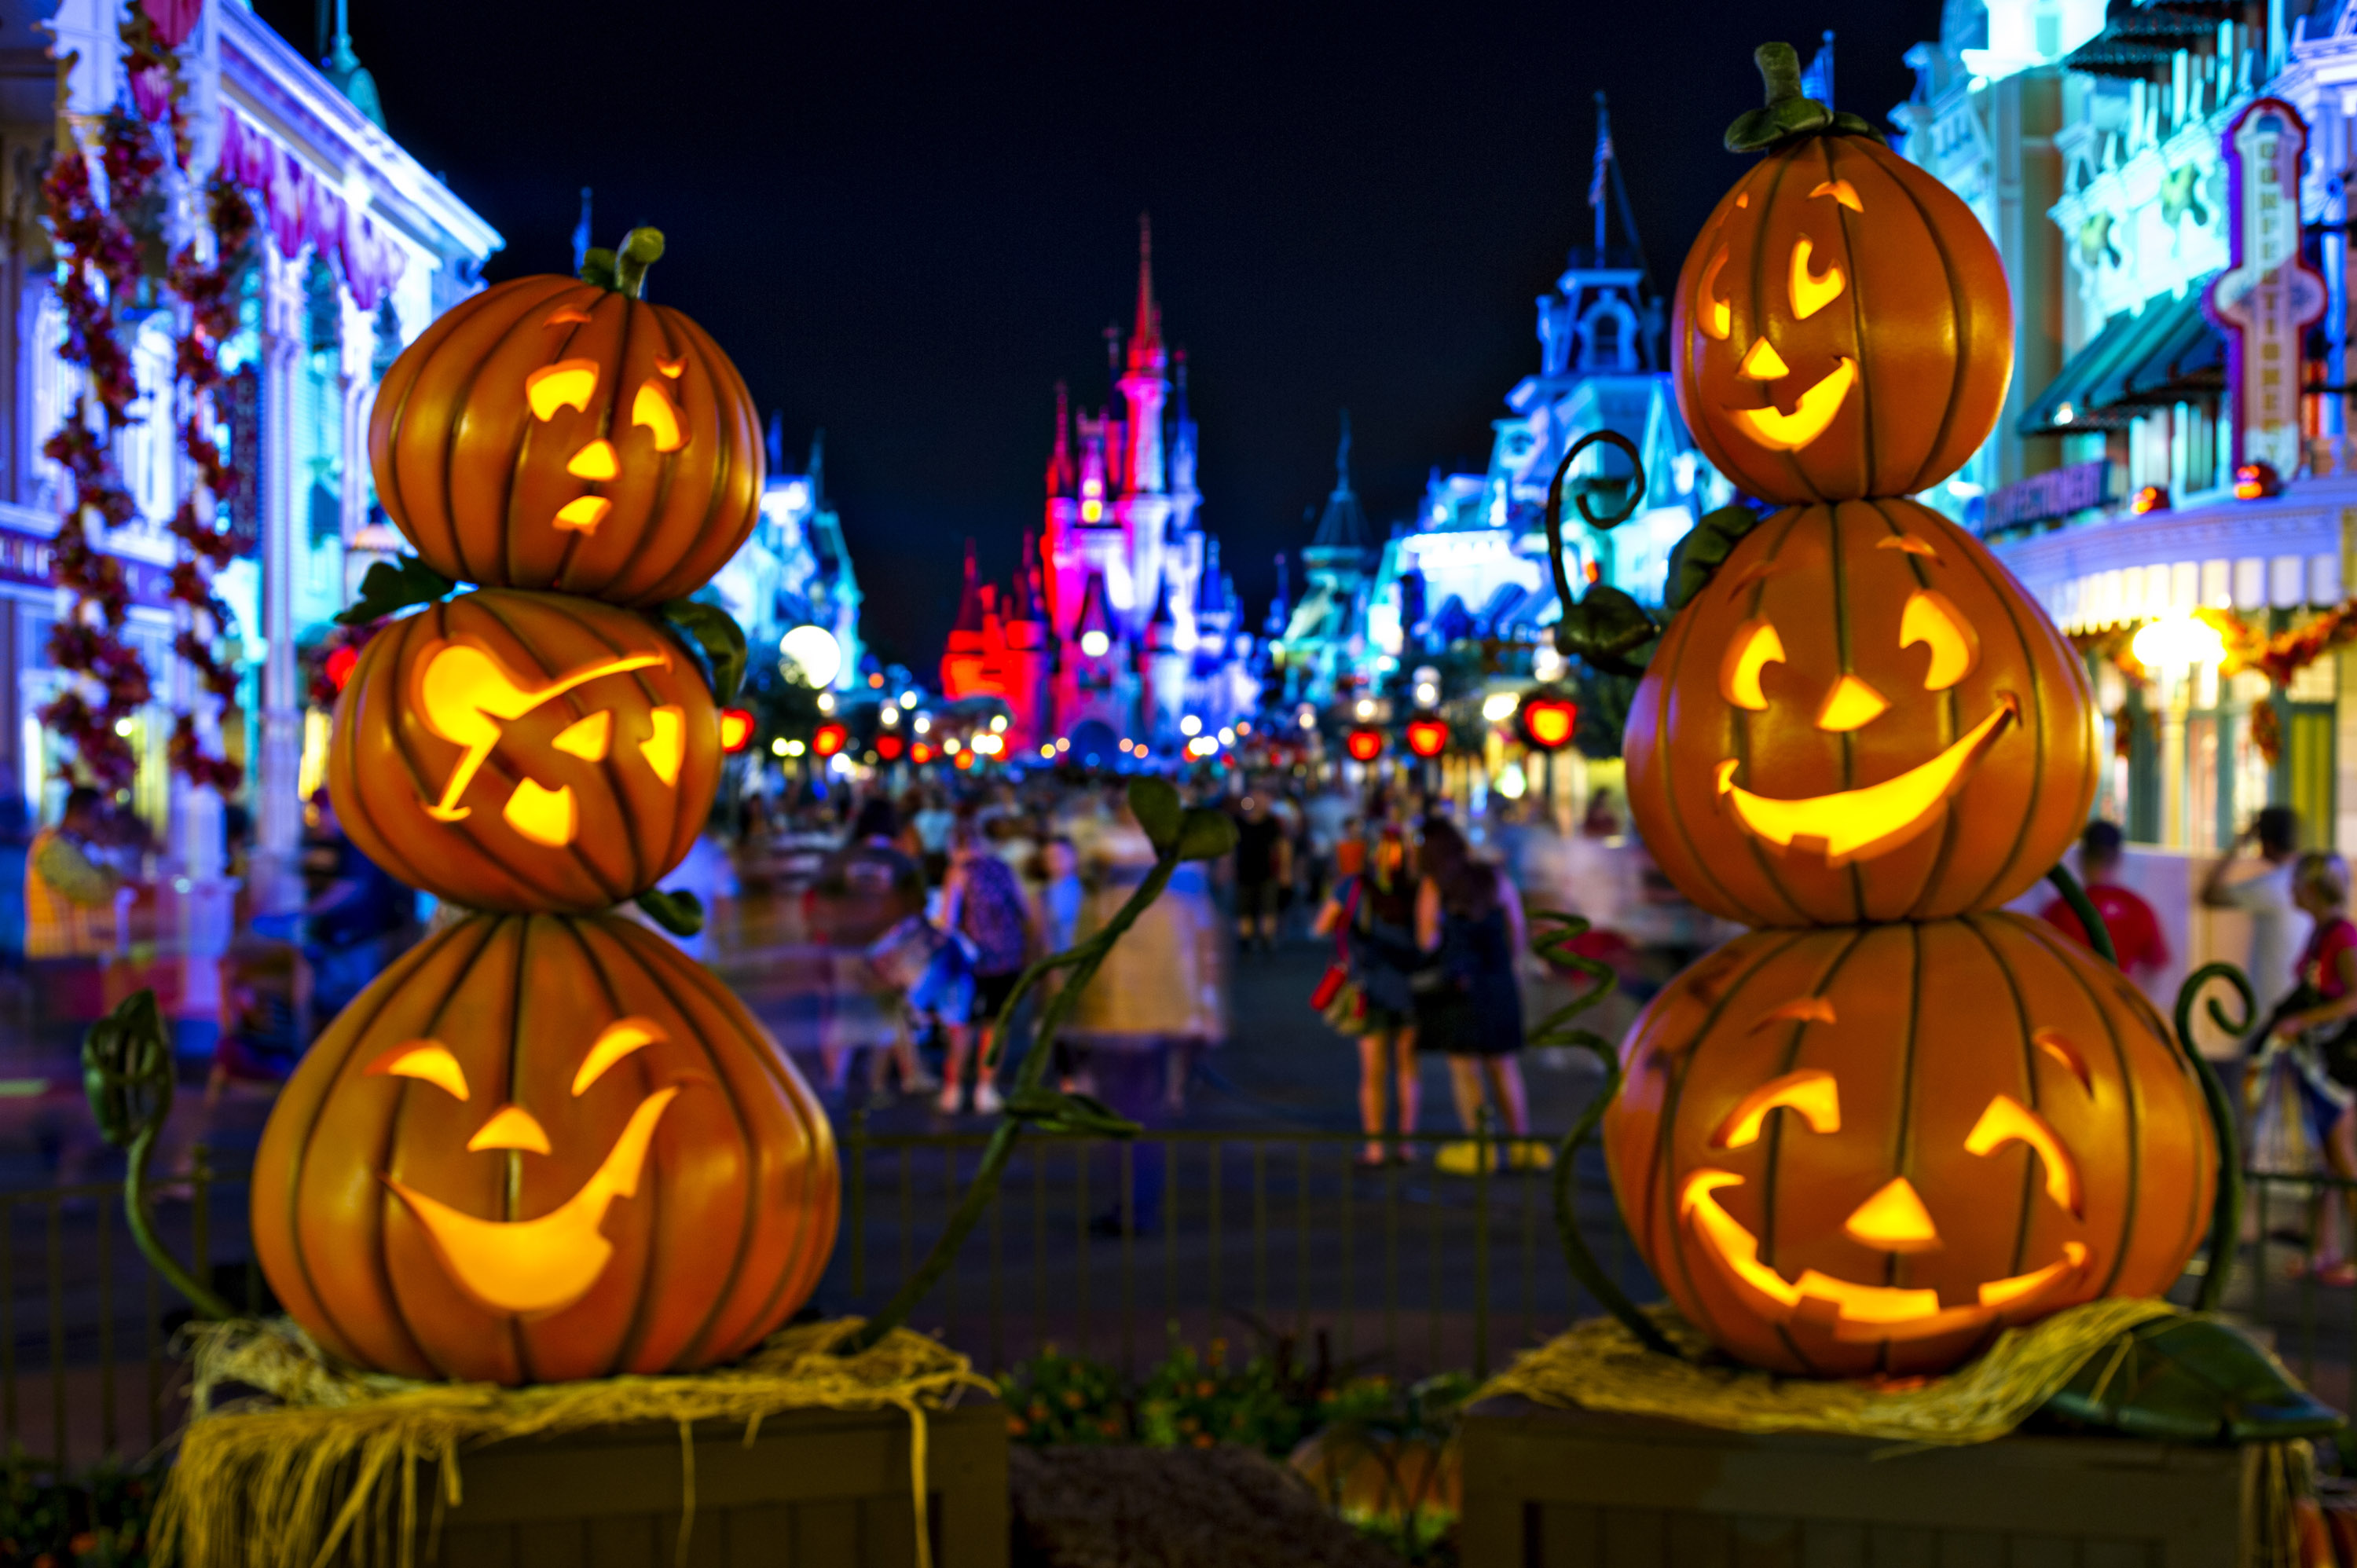 Disney Halloween Pictures.For The First Time Disney Will Allow Halloween Costumes In Magic Kingdom